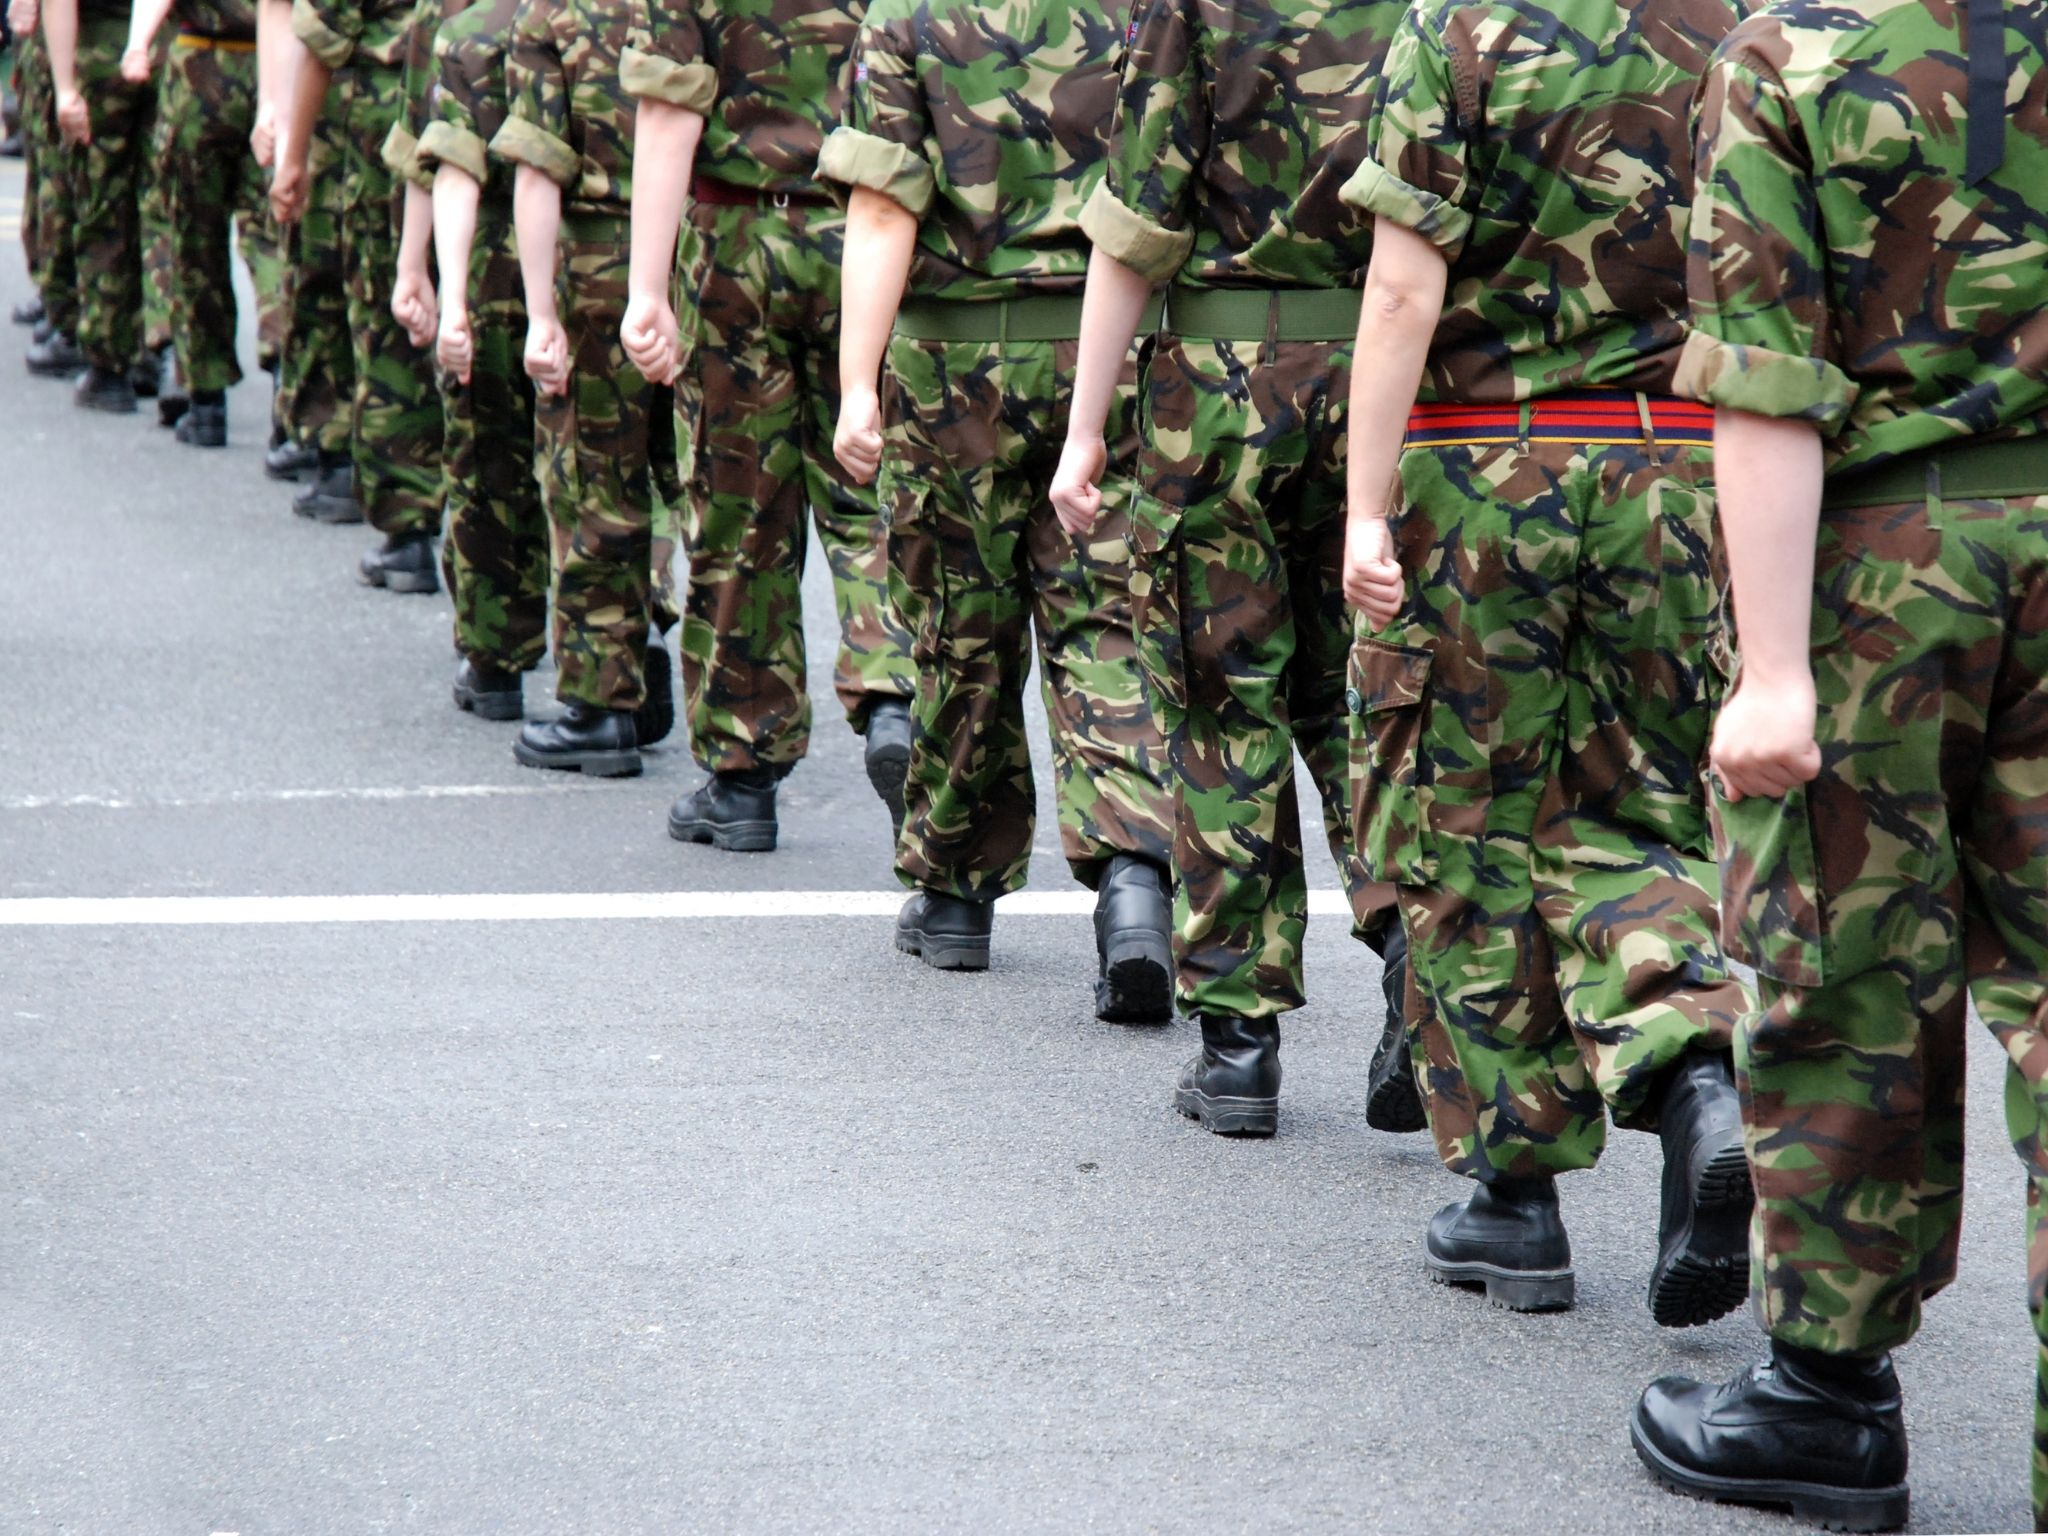 'White middle-aged men' leading armed forces blamed for bullying culture in new report